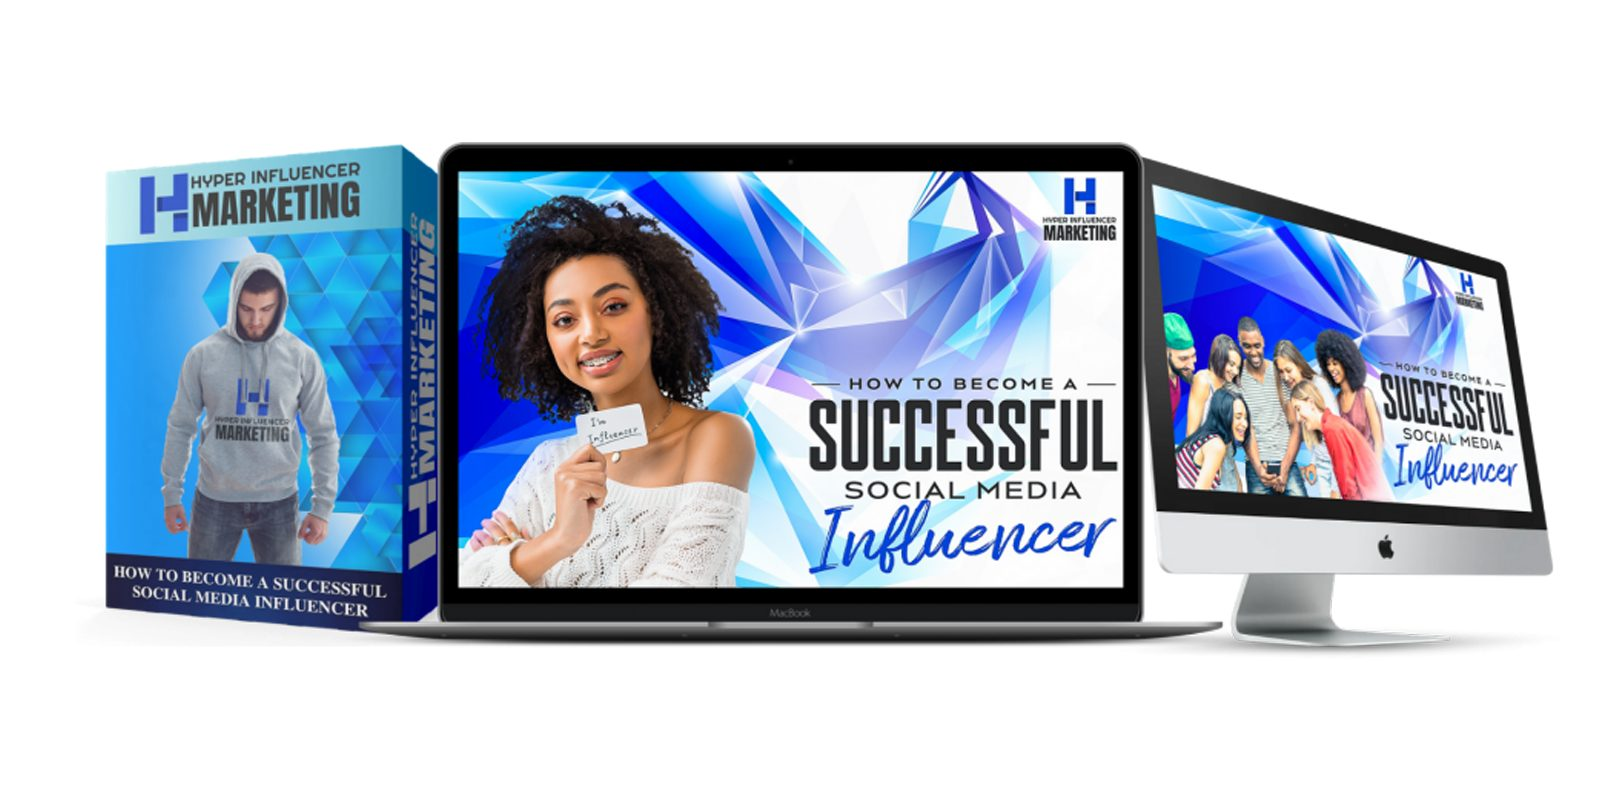 Hyper Influencer Marketing review